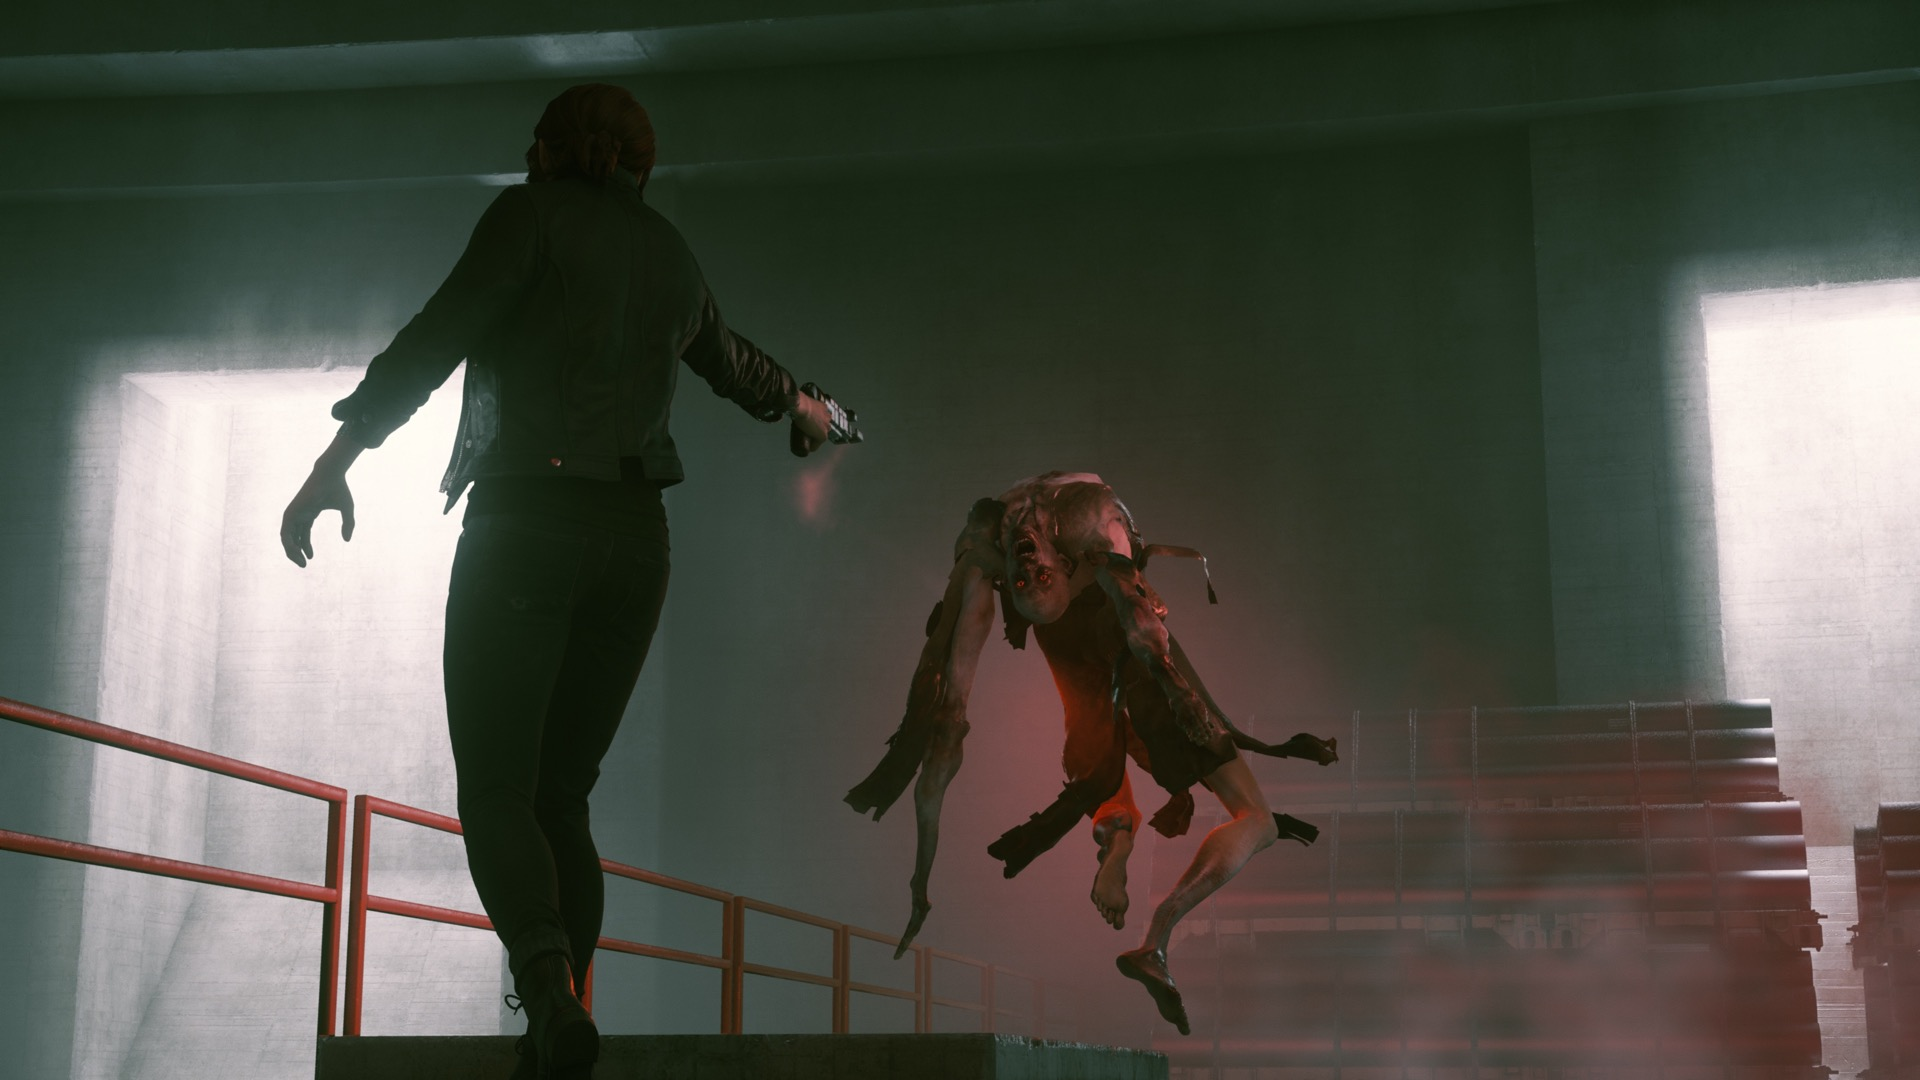 Control's protagonist, Jesse, aims her gun at a grotesque, floating enemy